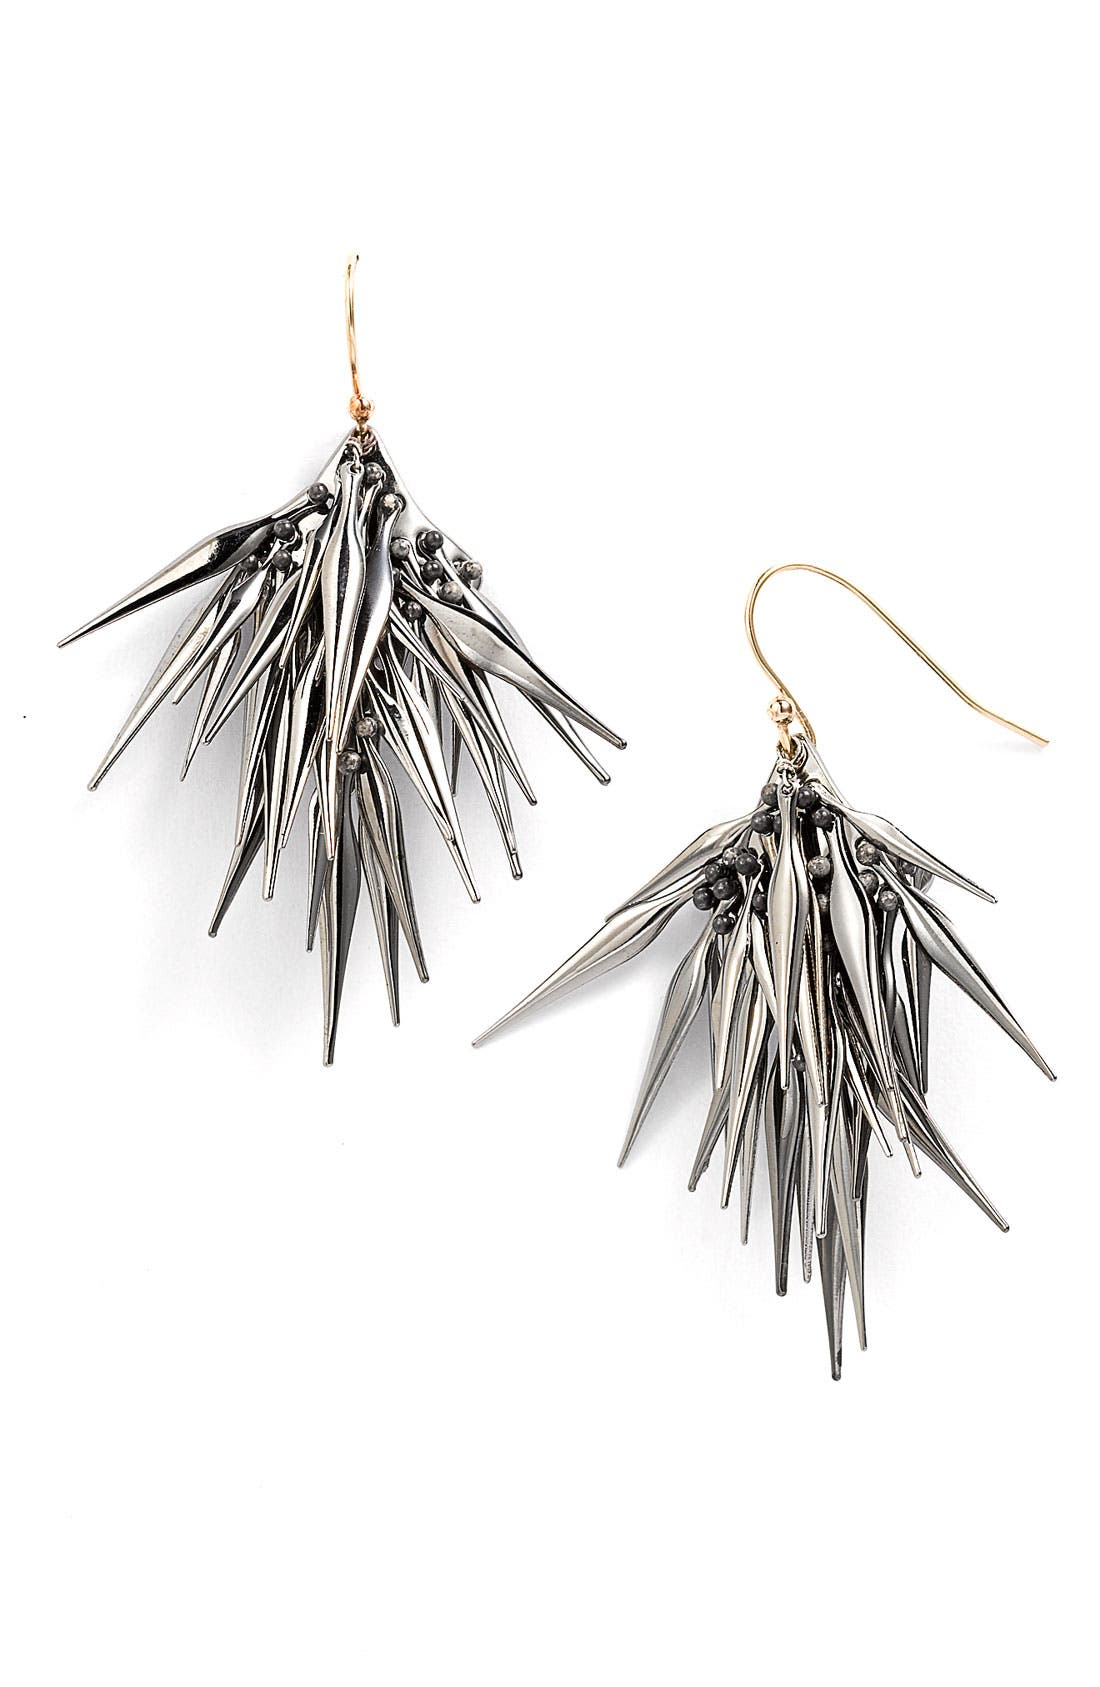 Main Image - Alexis Bittar 'Miss Havisham' Spike Earrings